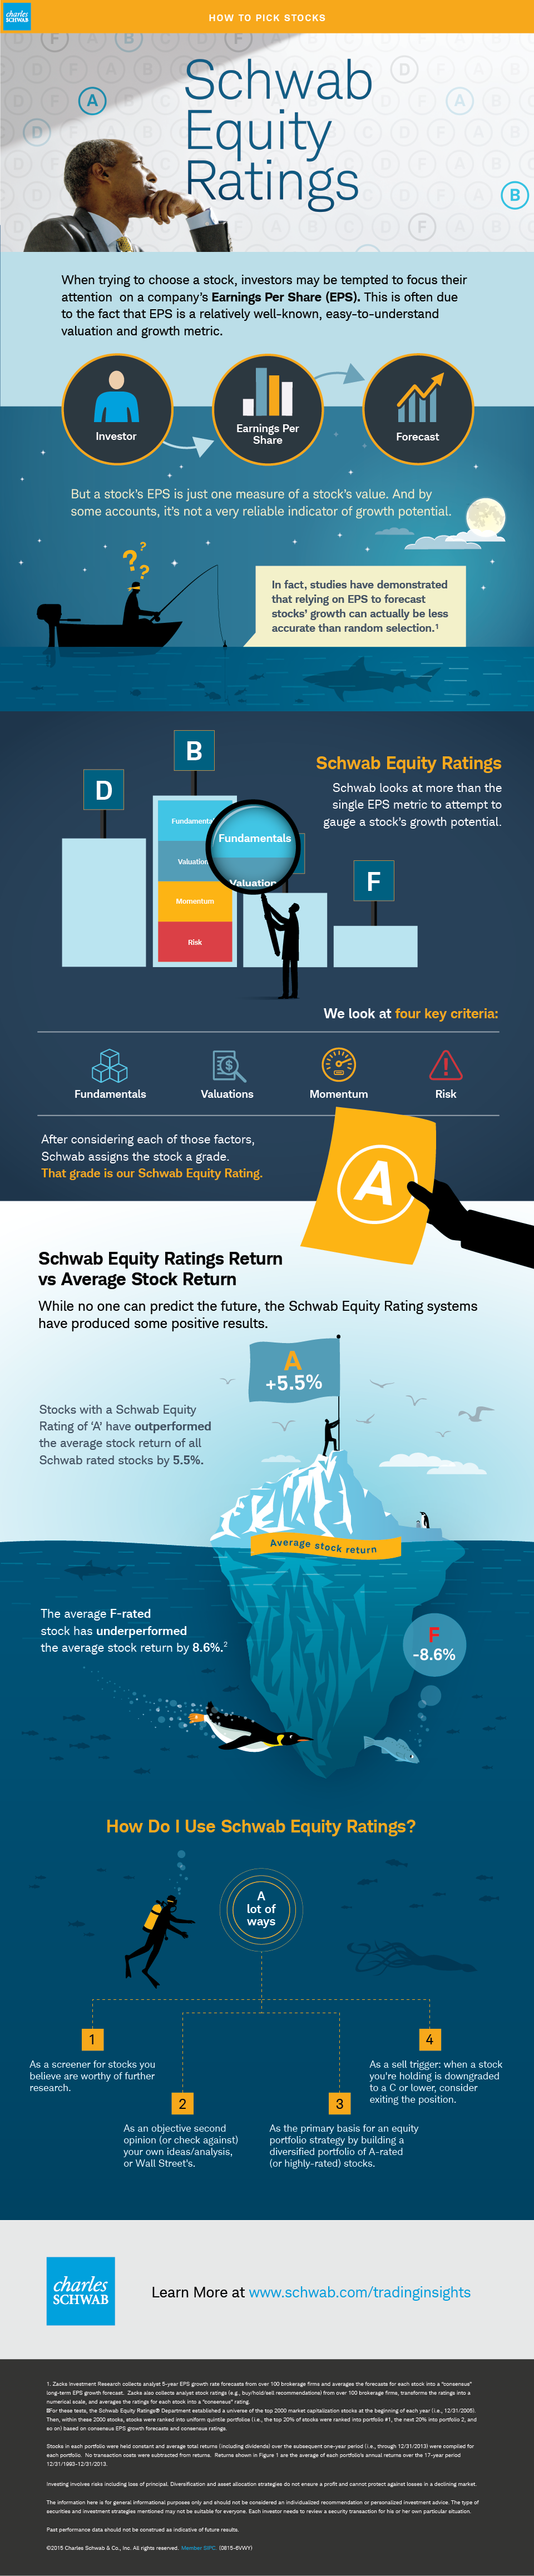 Infographic: Schwab Equity Ratings